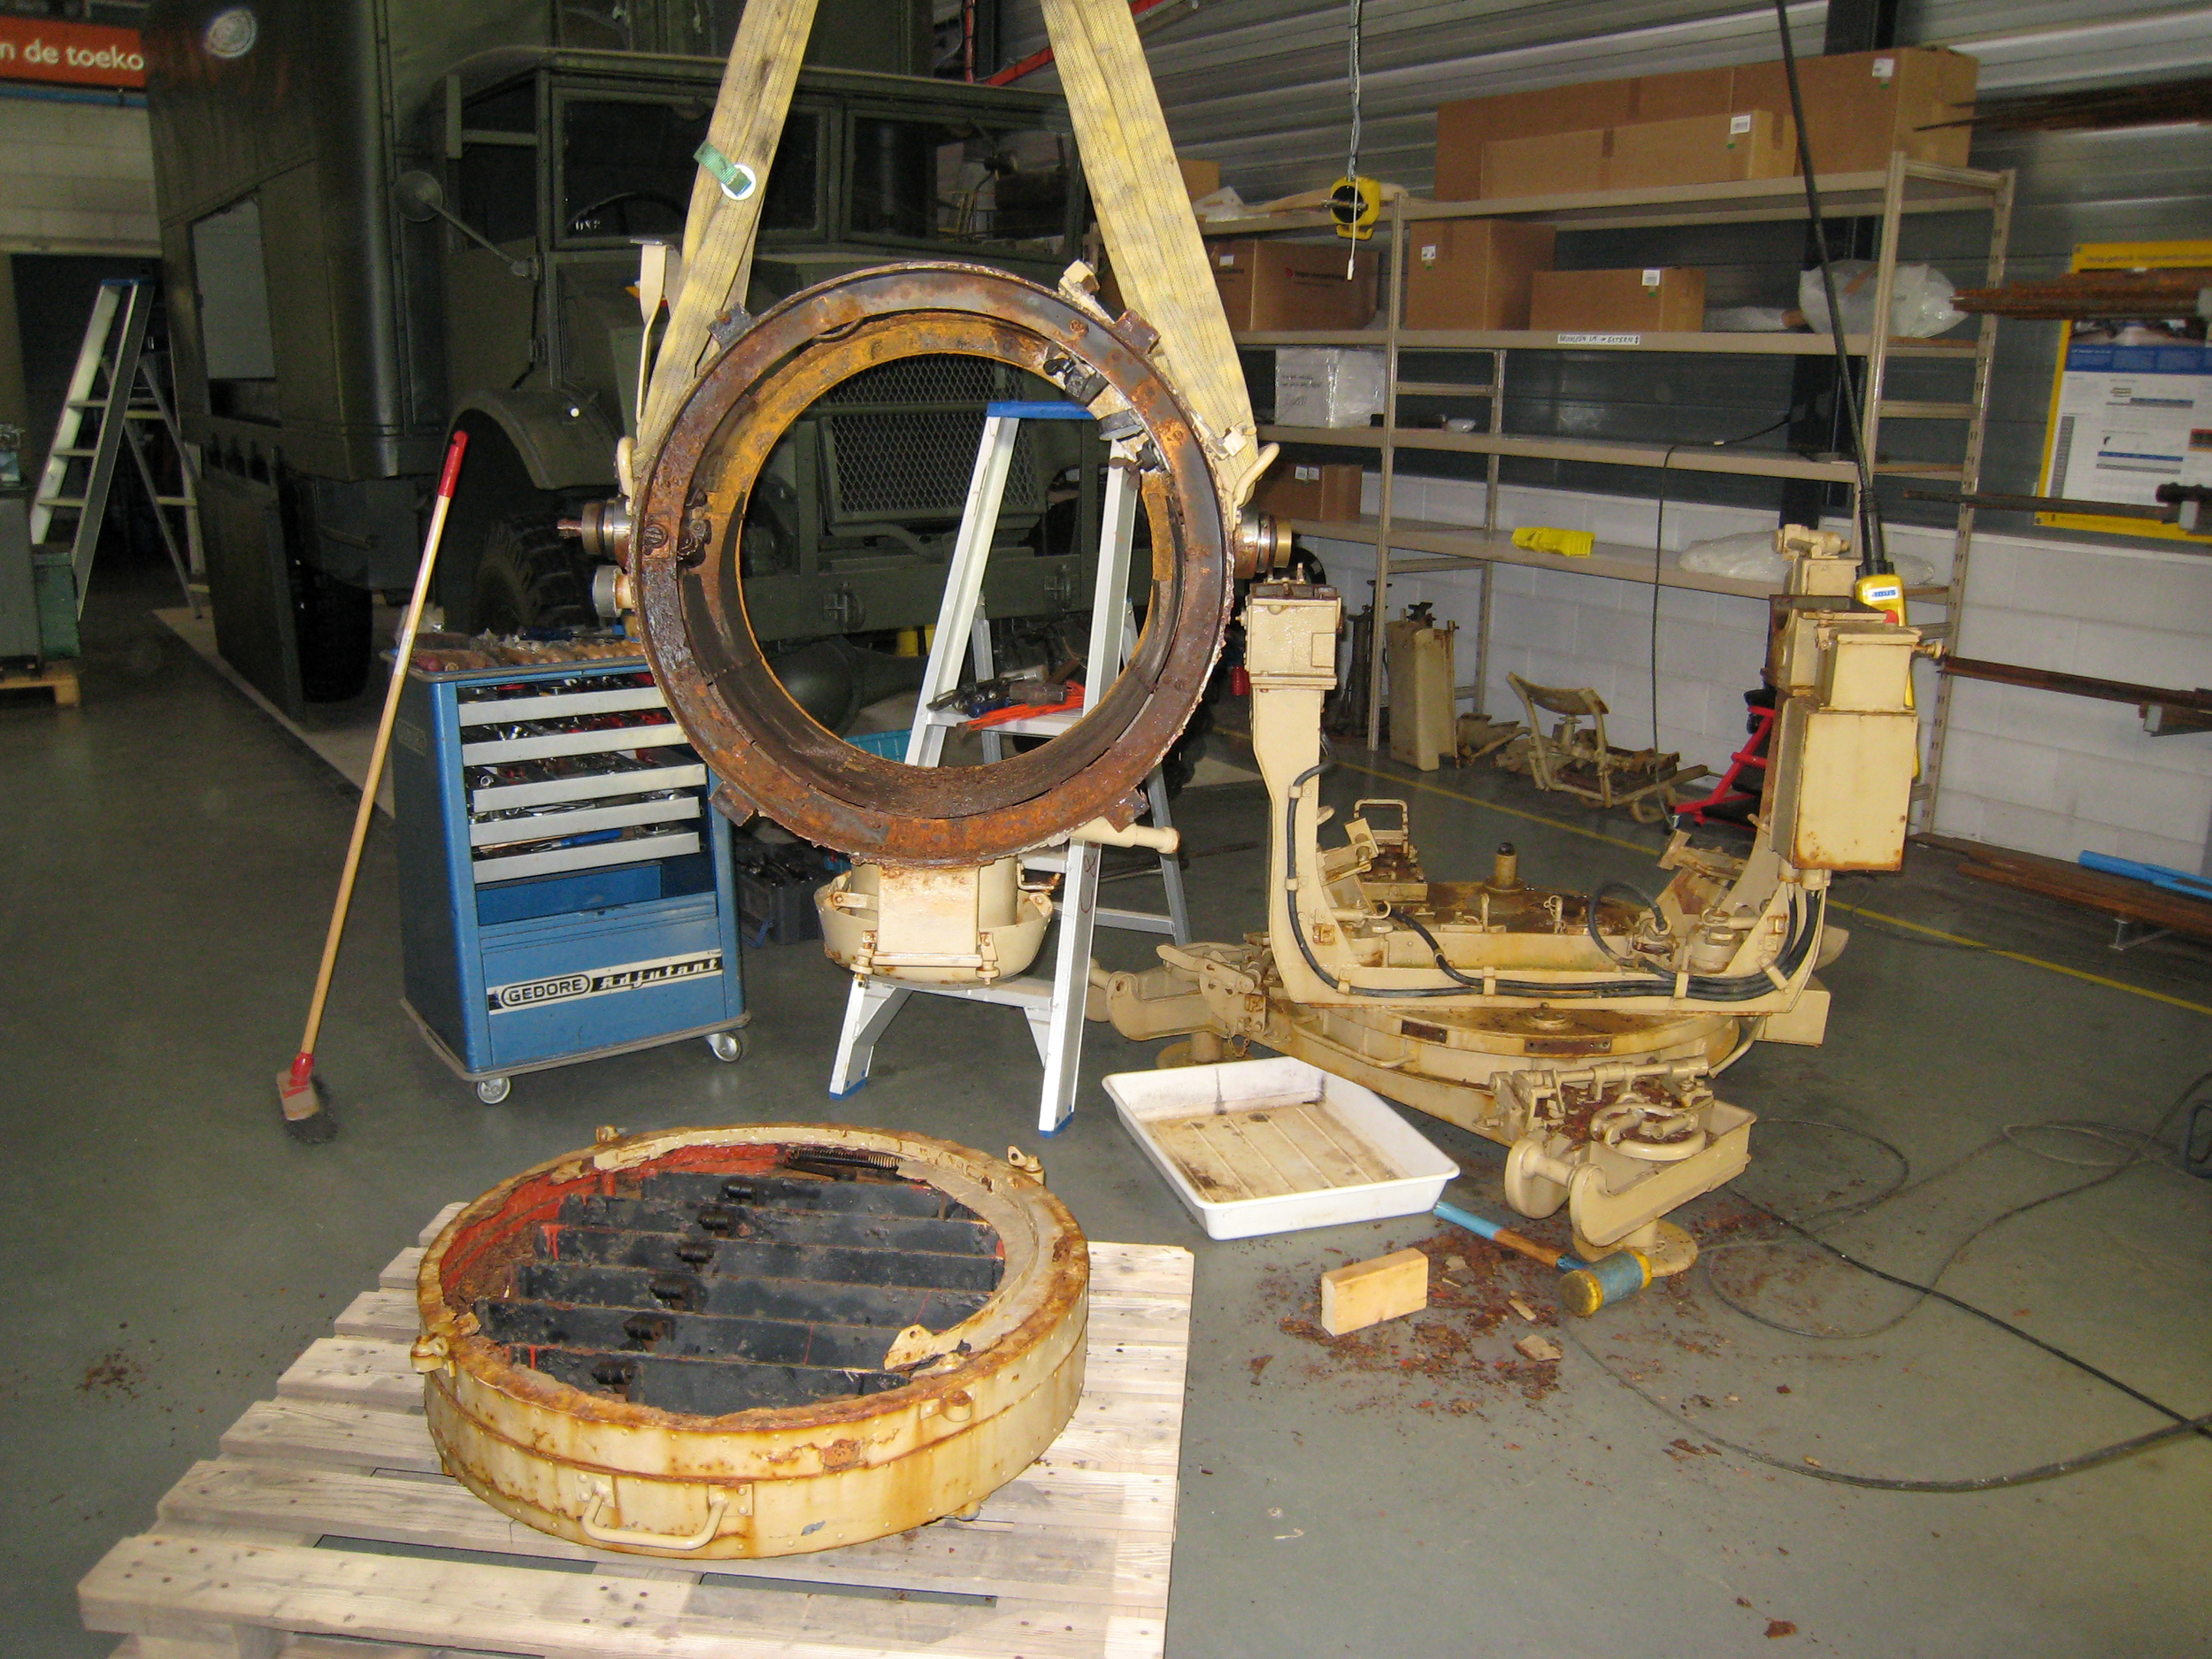 disassembly of the rusted parts